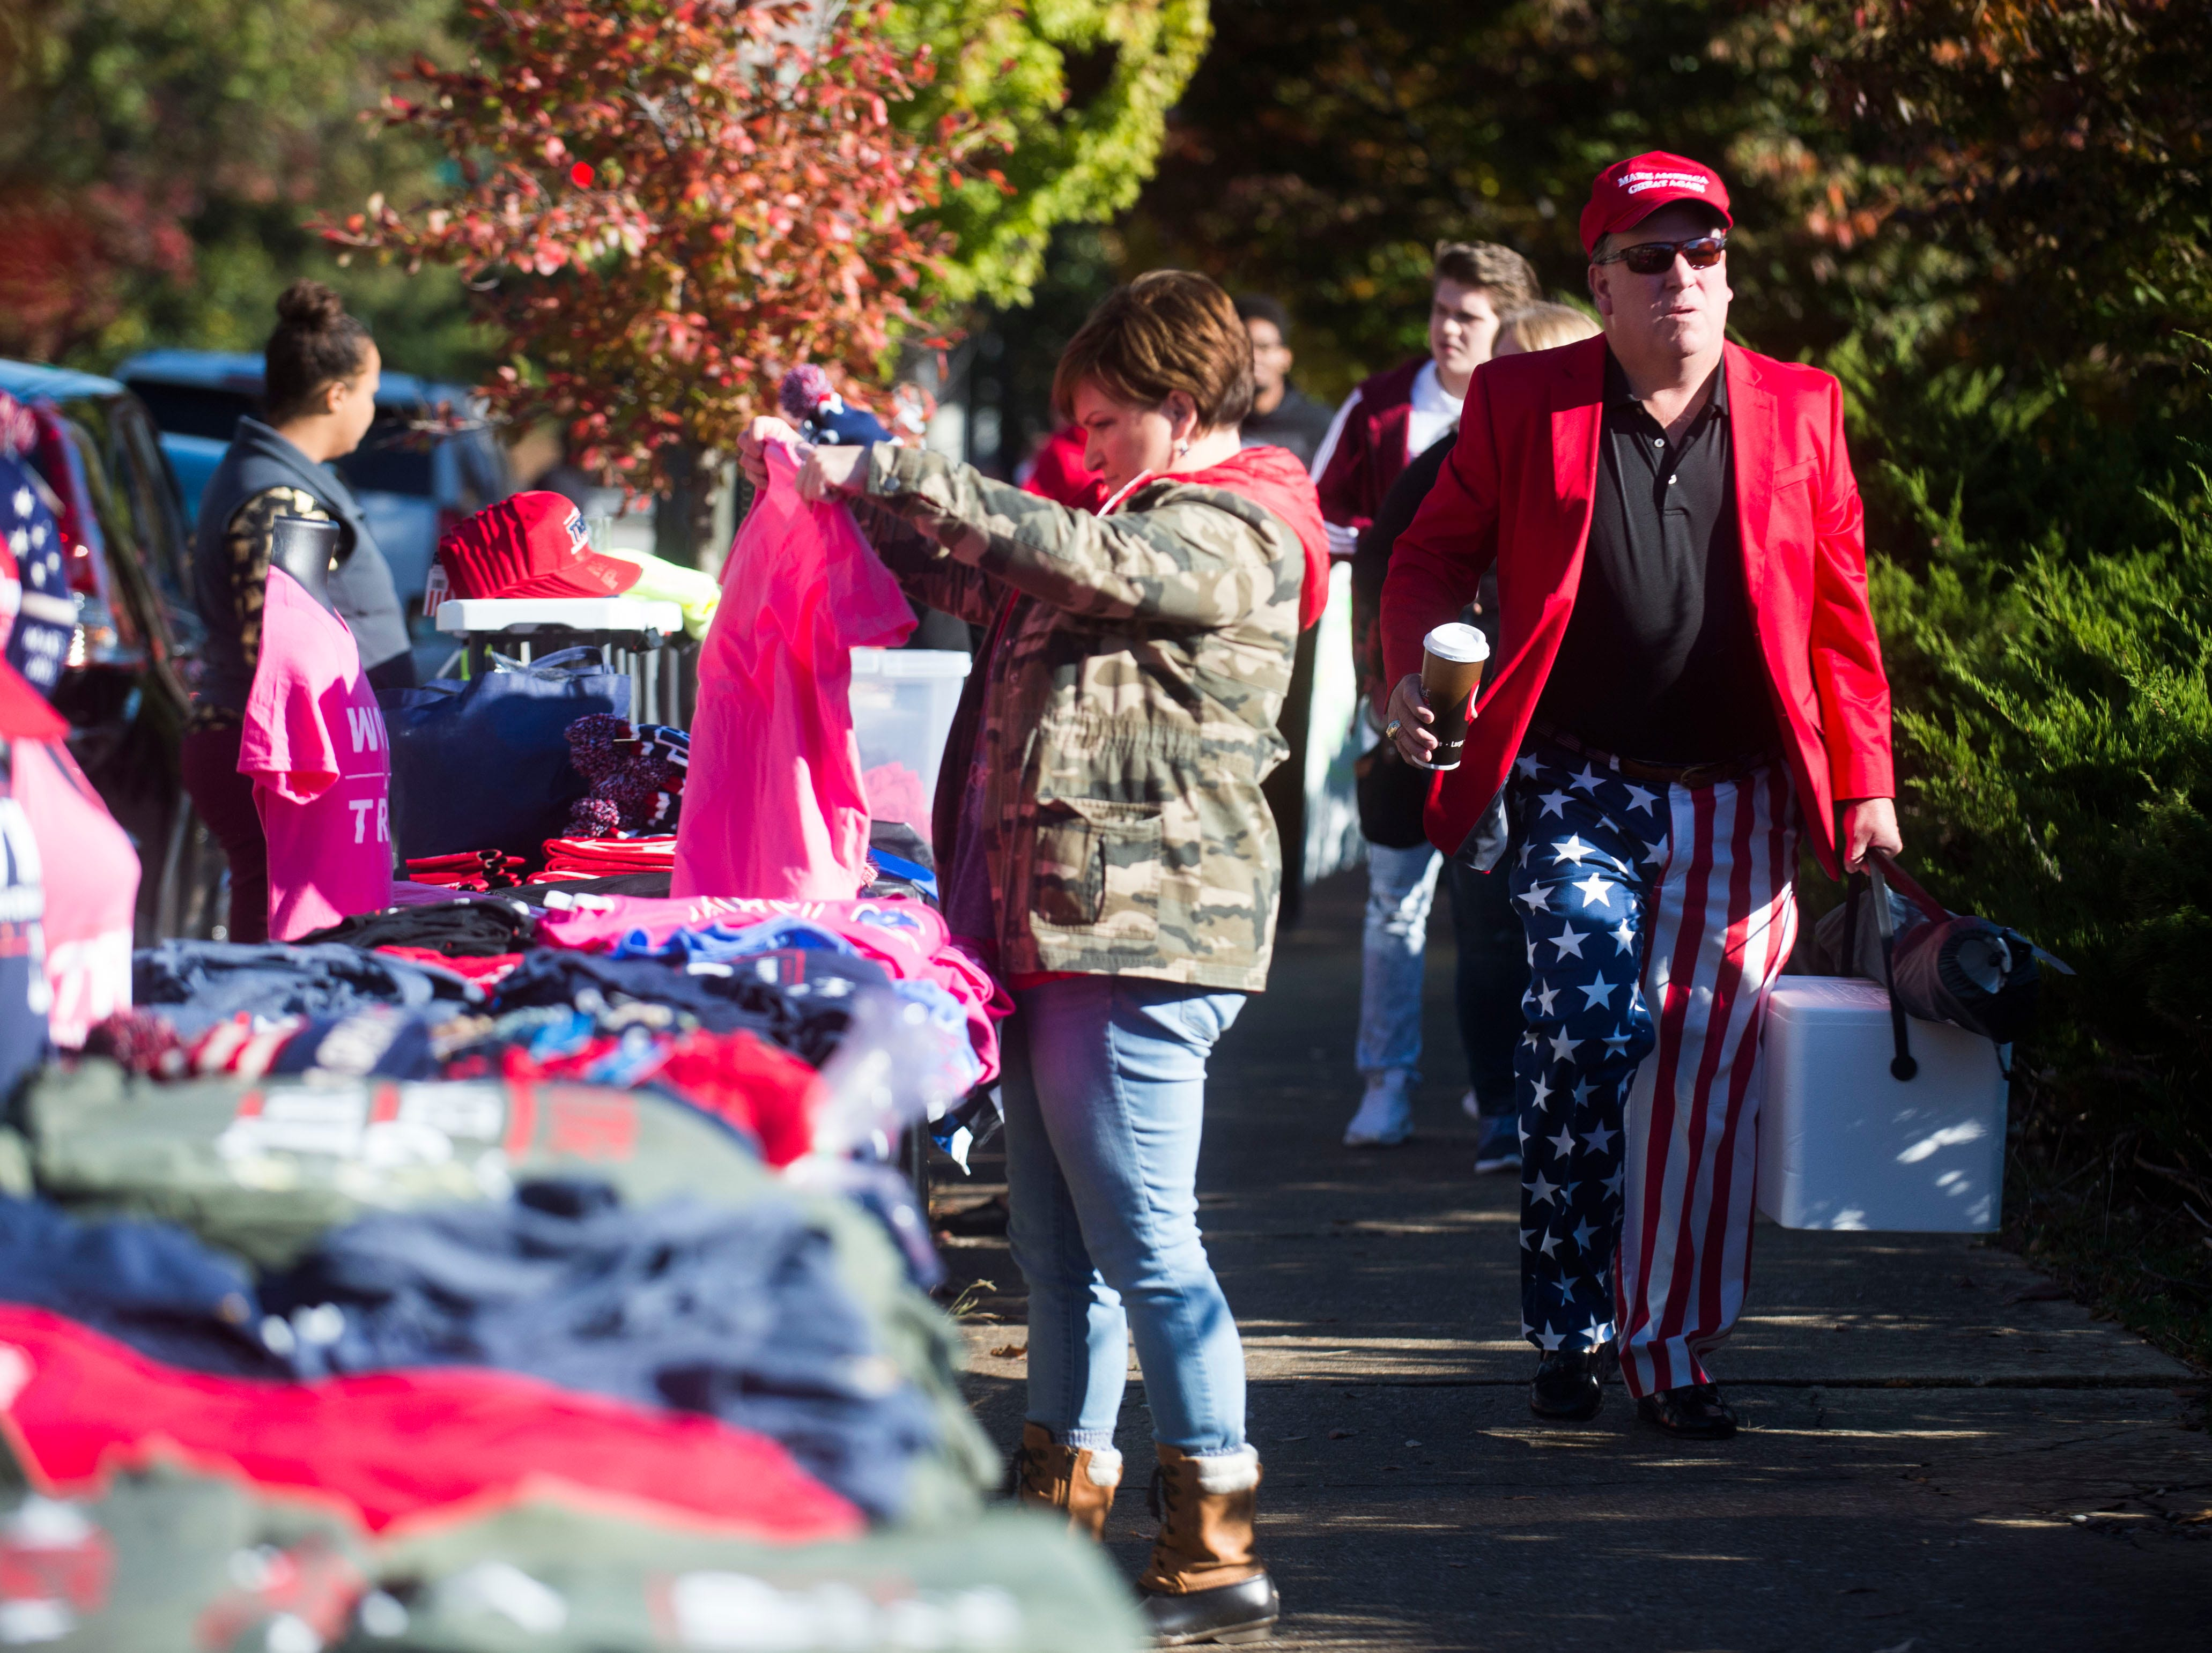 Trump supporters gather before a Donald Trump rally in support of U.S. Rep. Marsha Blackburn for the U.S. Senate at McKenzie Arena in Chattanooga, Sunday, Nov. 4, 2018.